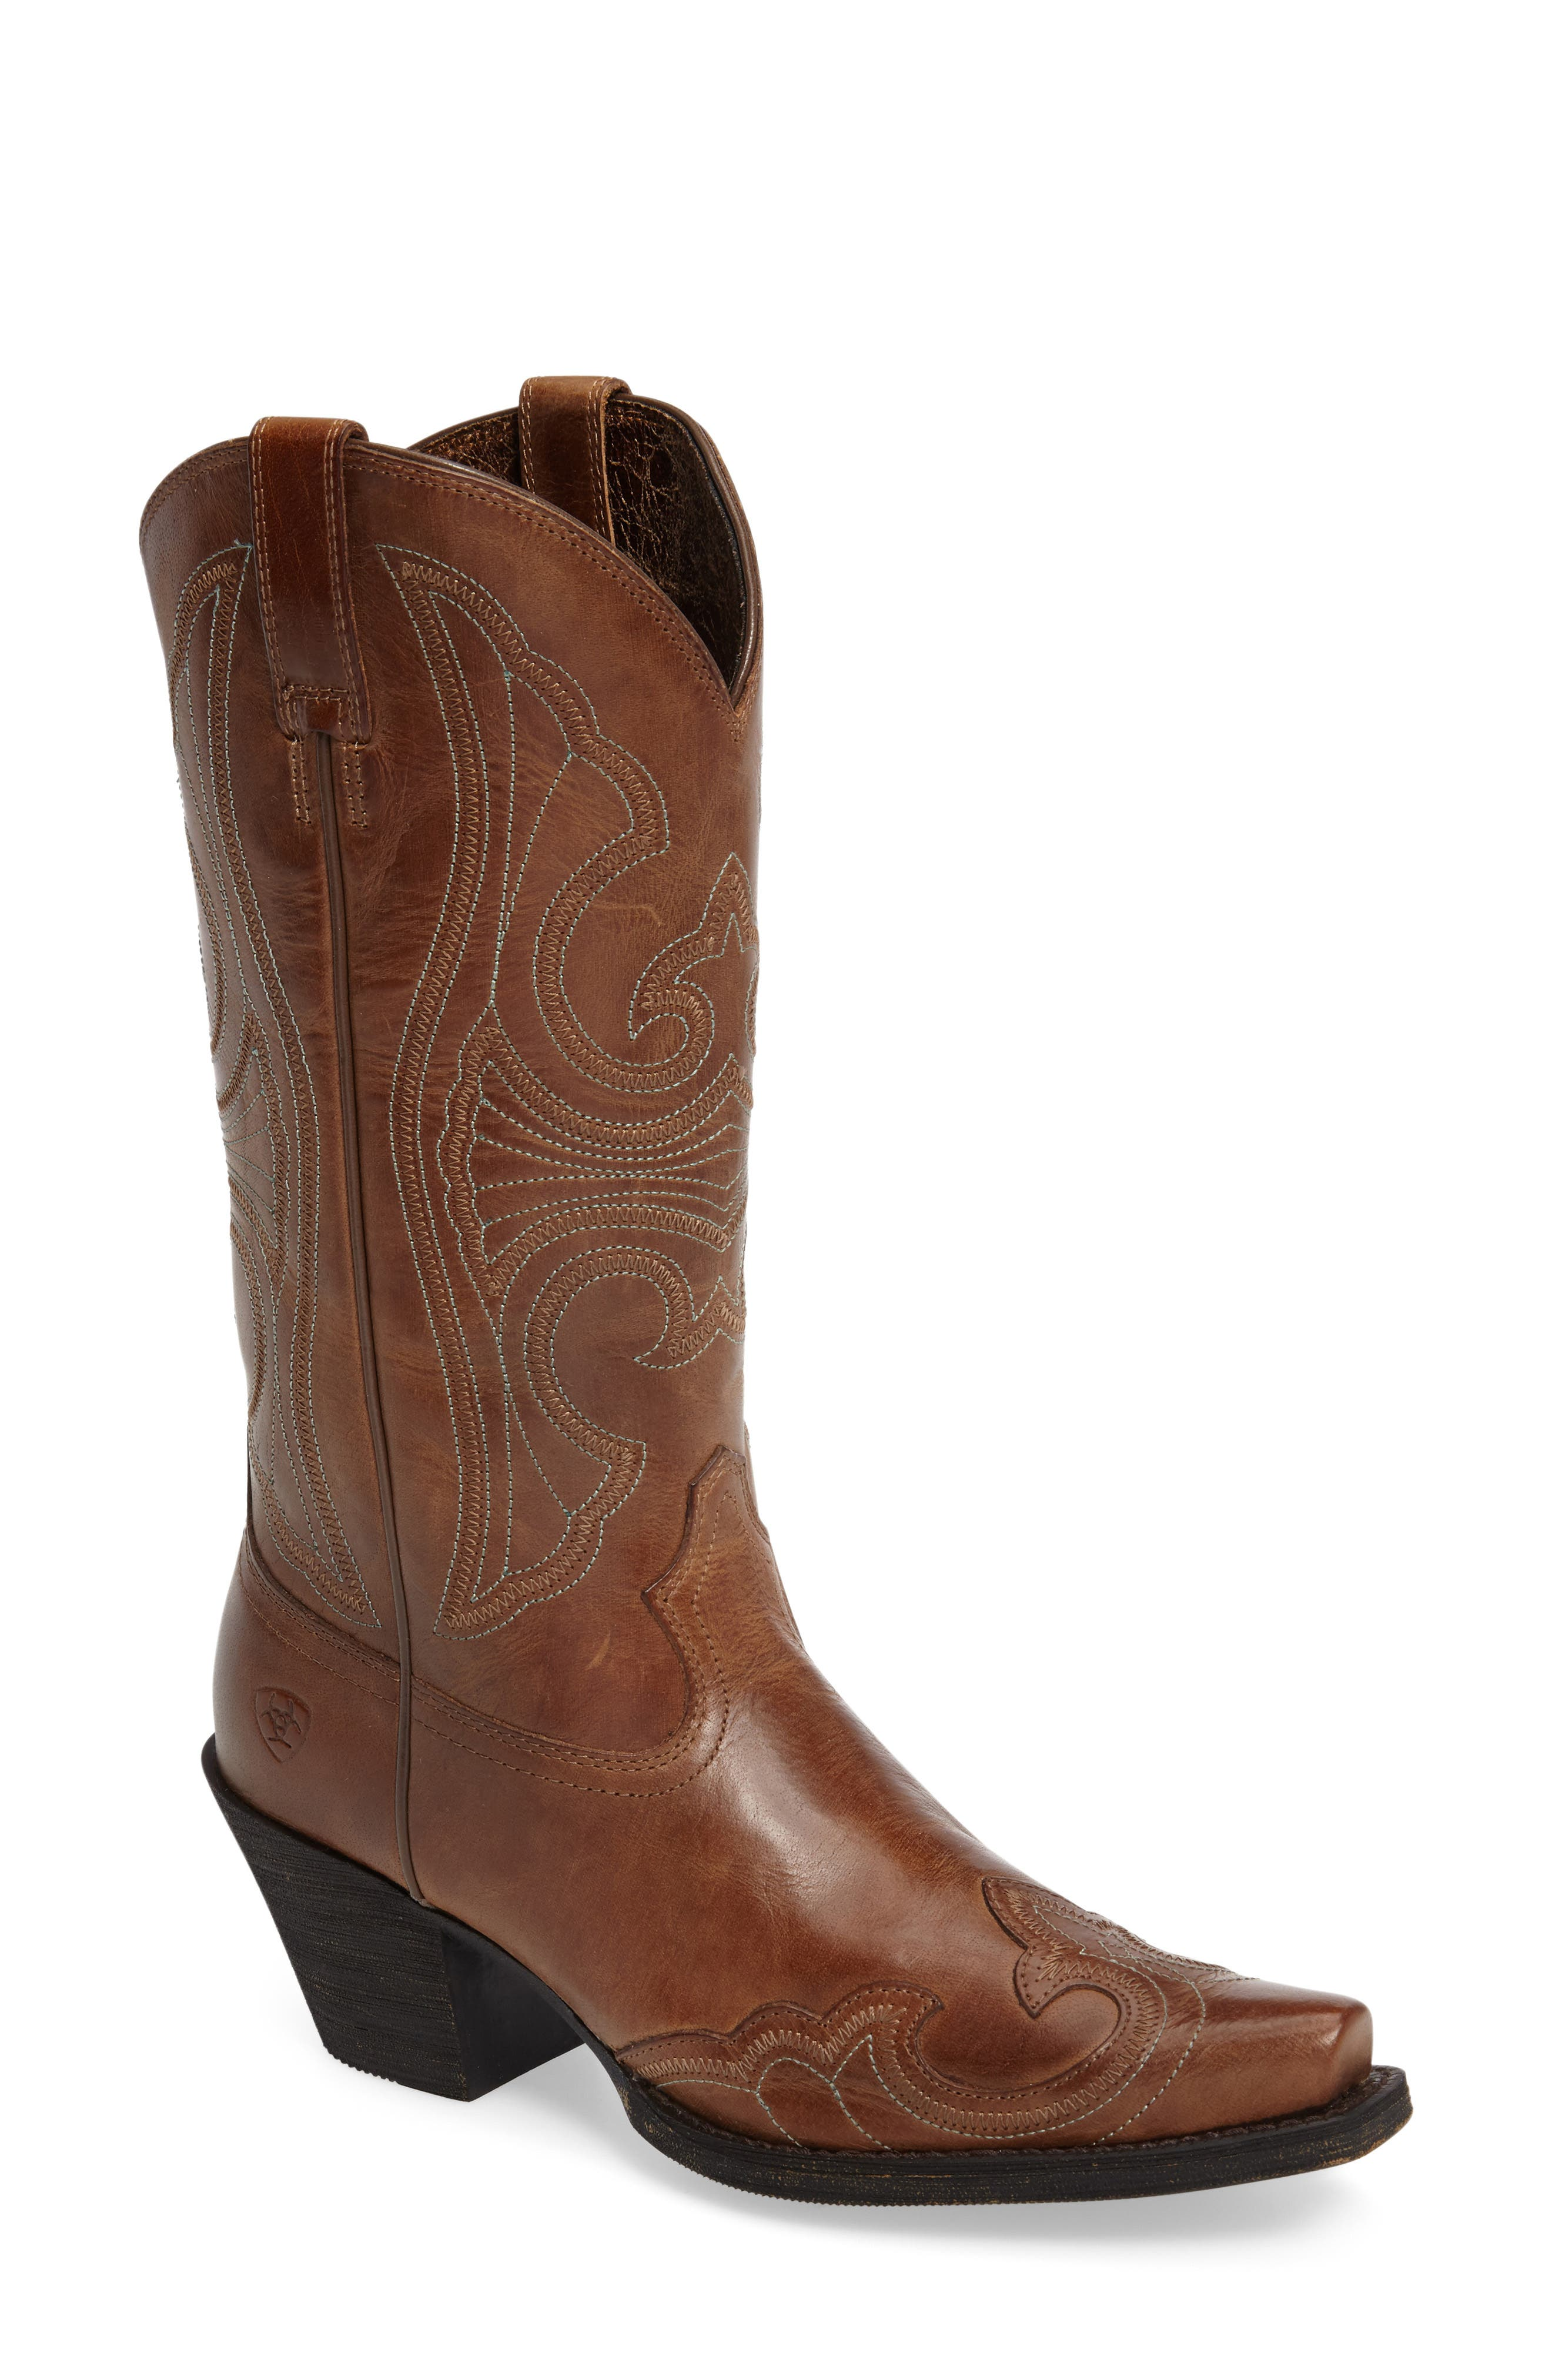 Alternate Image 1 Selected - Ariat Round Up D-Toe Wingtip Western Boot (Women)